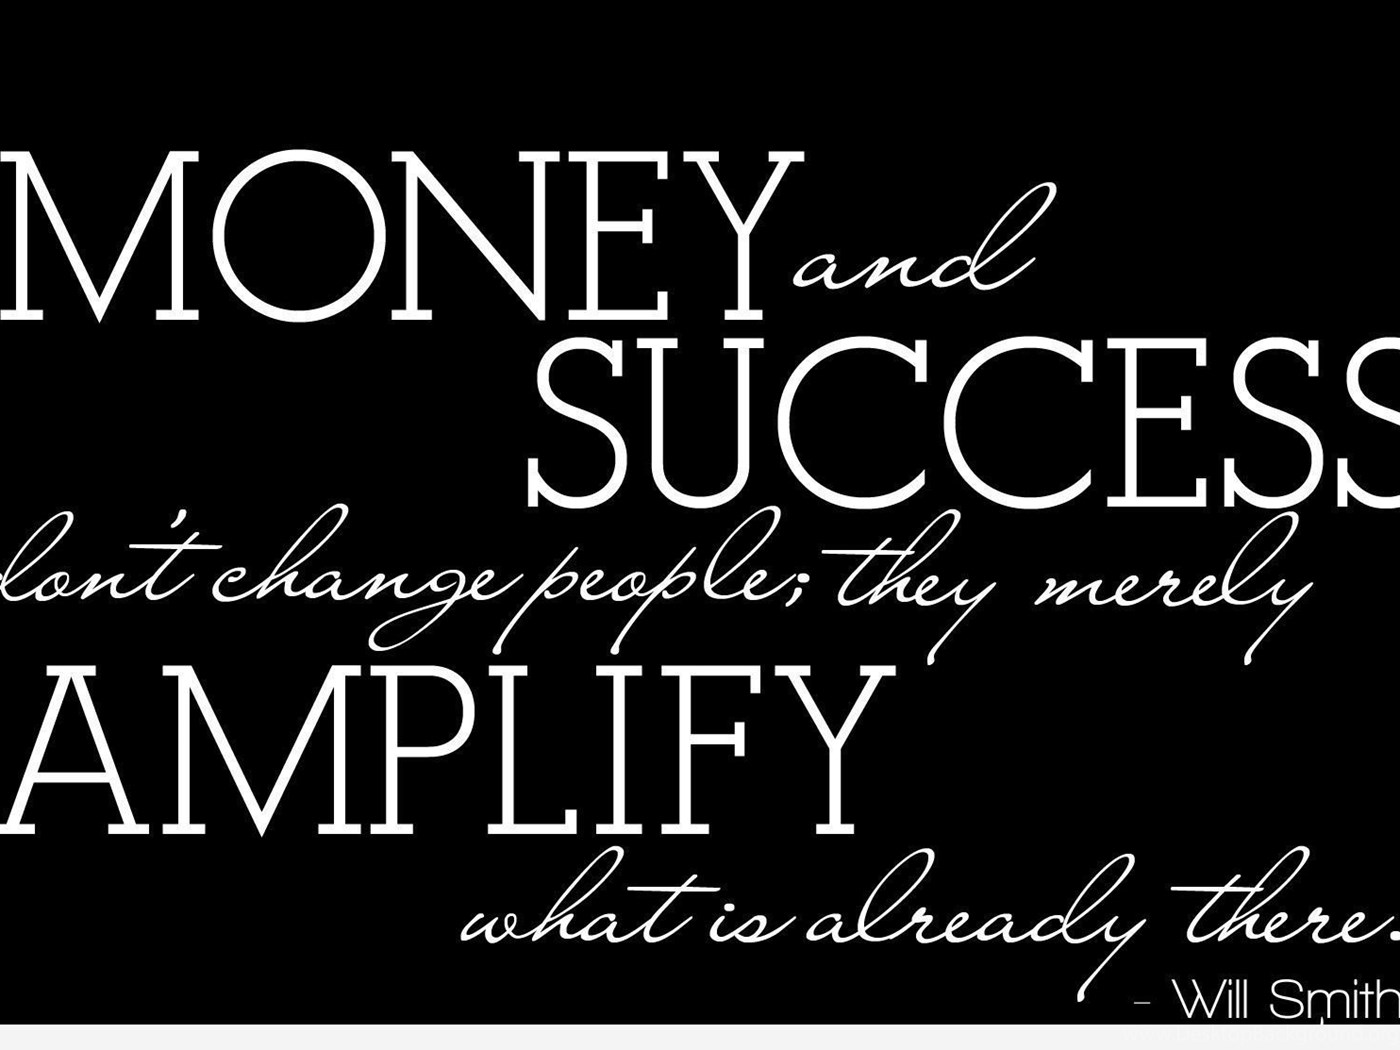 Funny Quotes Hd Wallpaper About Money And Success Jpg Desktop Background